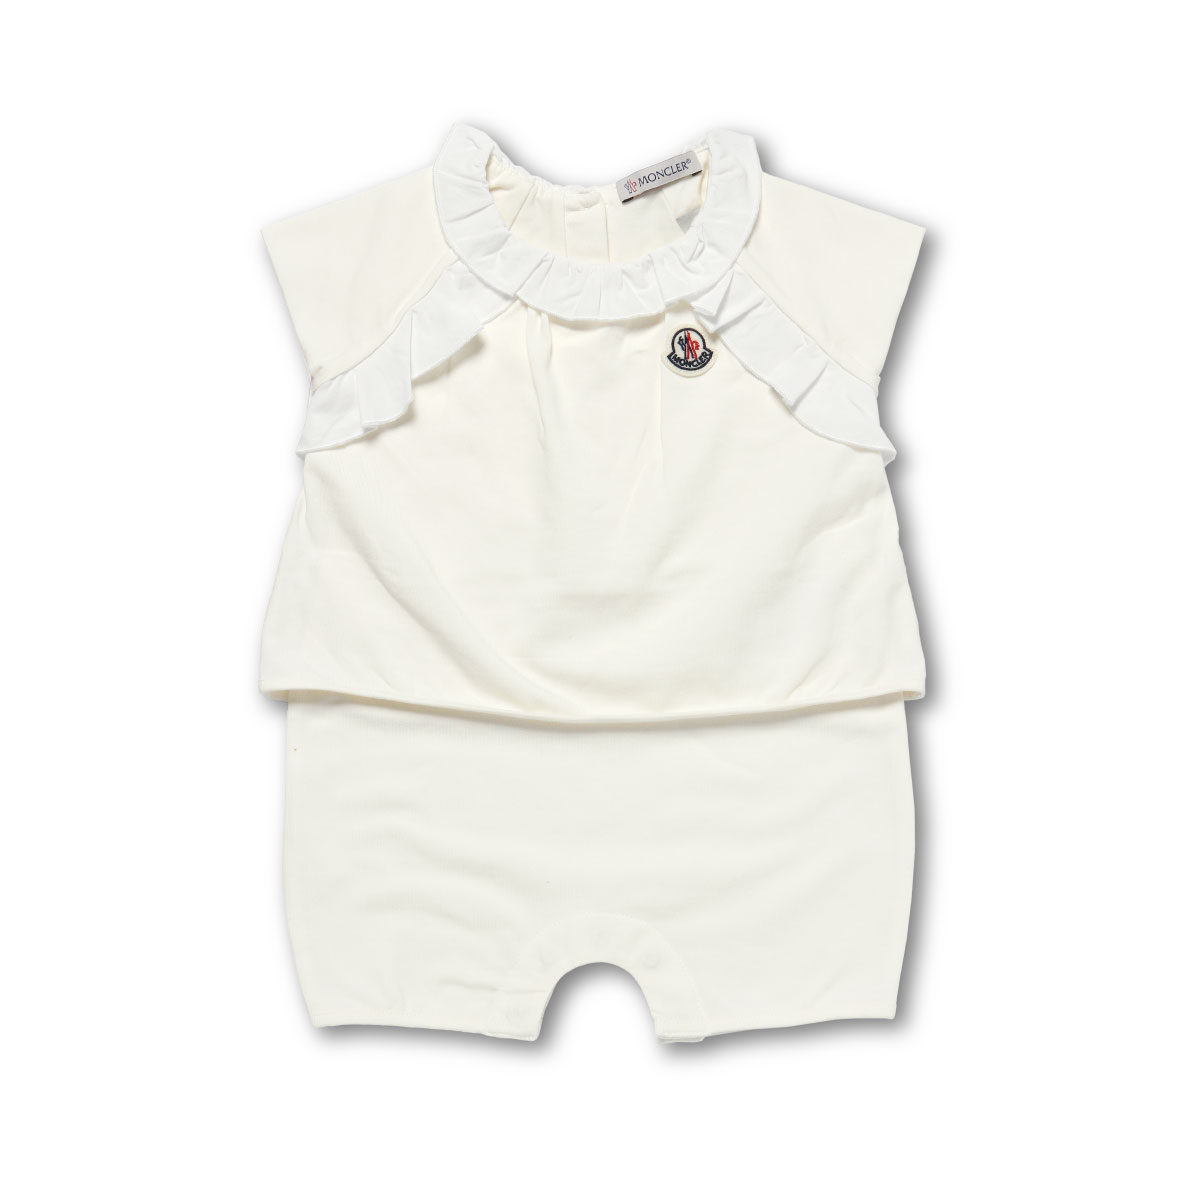 8571505 Monk rail MONCLER rompers baby girls 8,790A 034 no sleeve rompers WHITE white 3M-18M